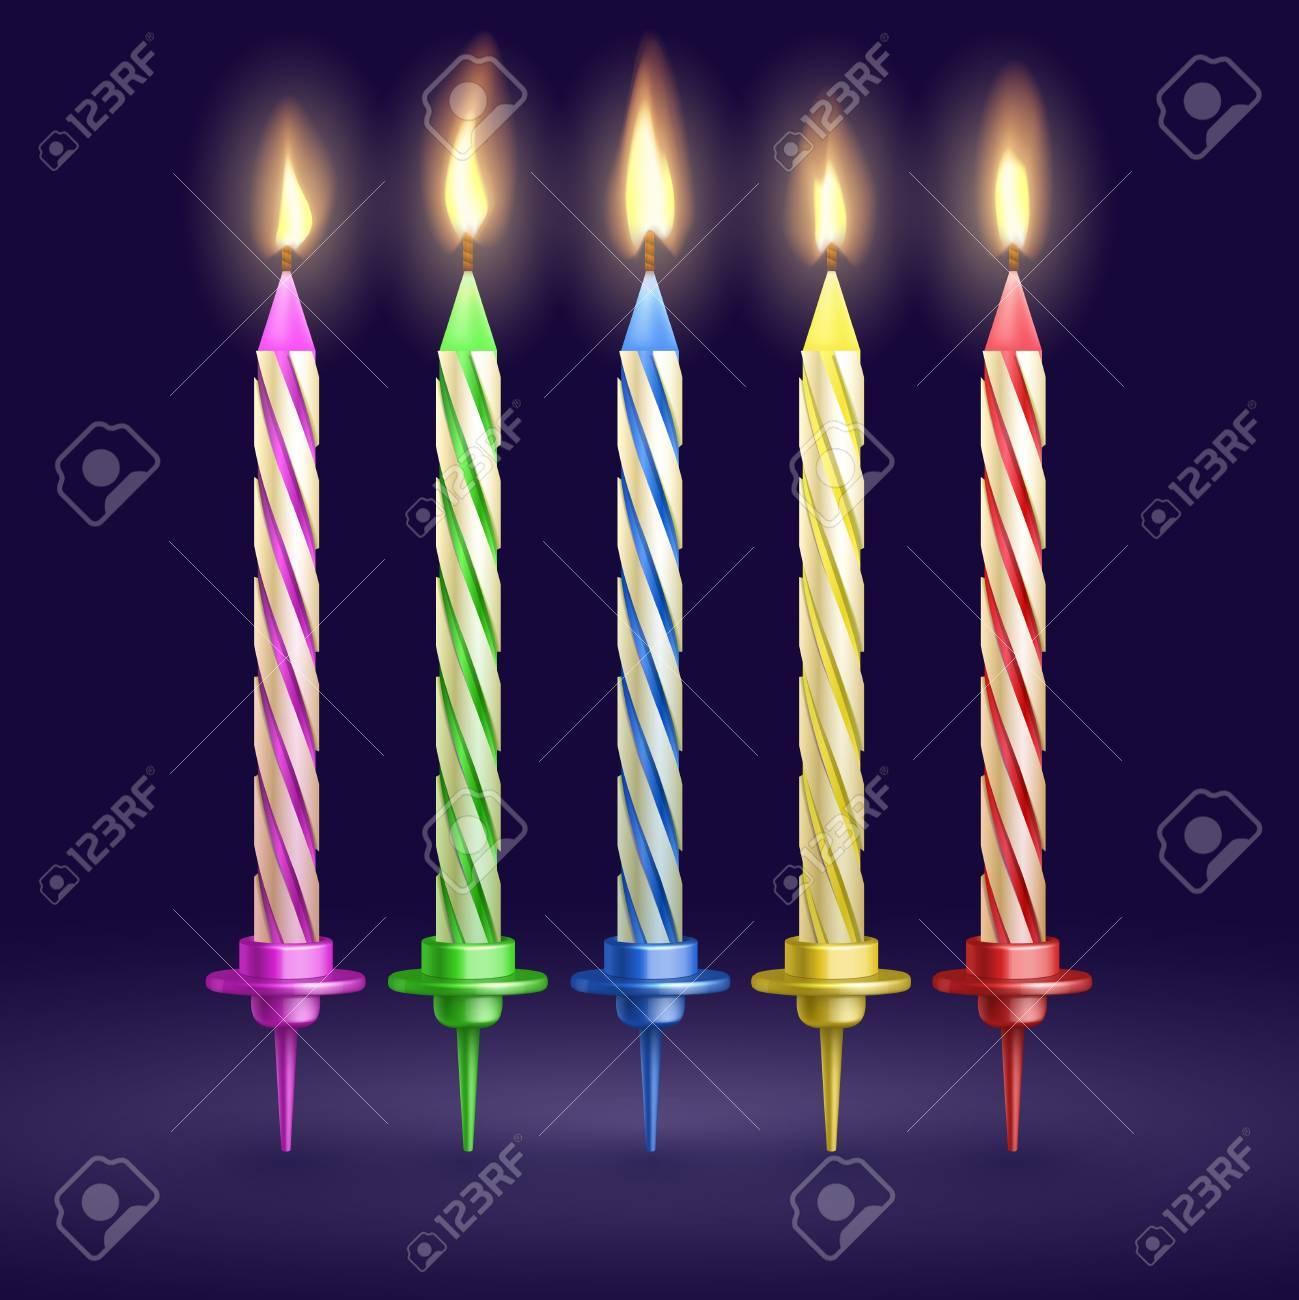 Burned Birthday Party And Xmas Candles Isolated 3d Realistic Vector Illustration Candle Fire For